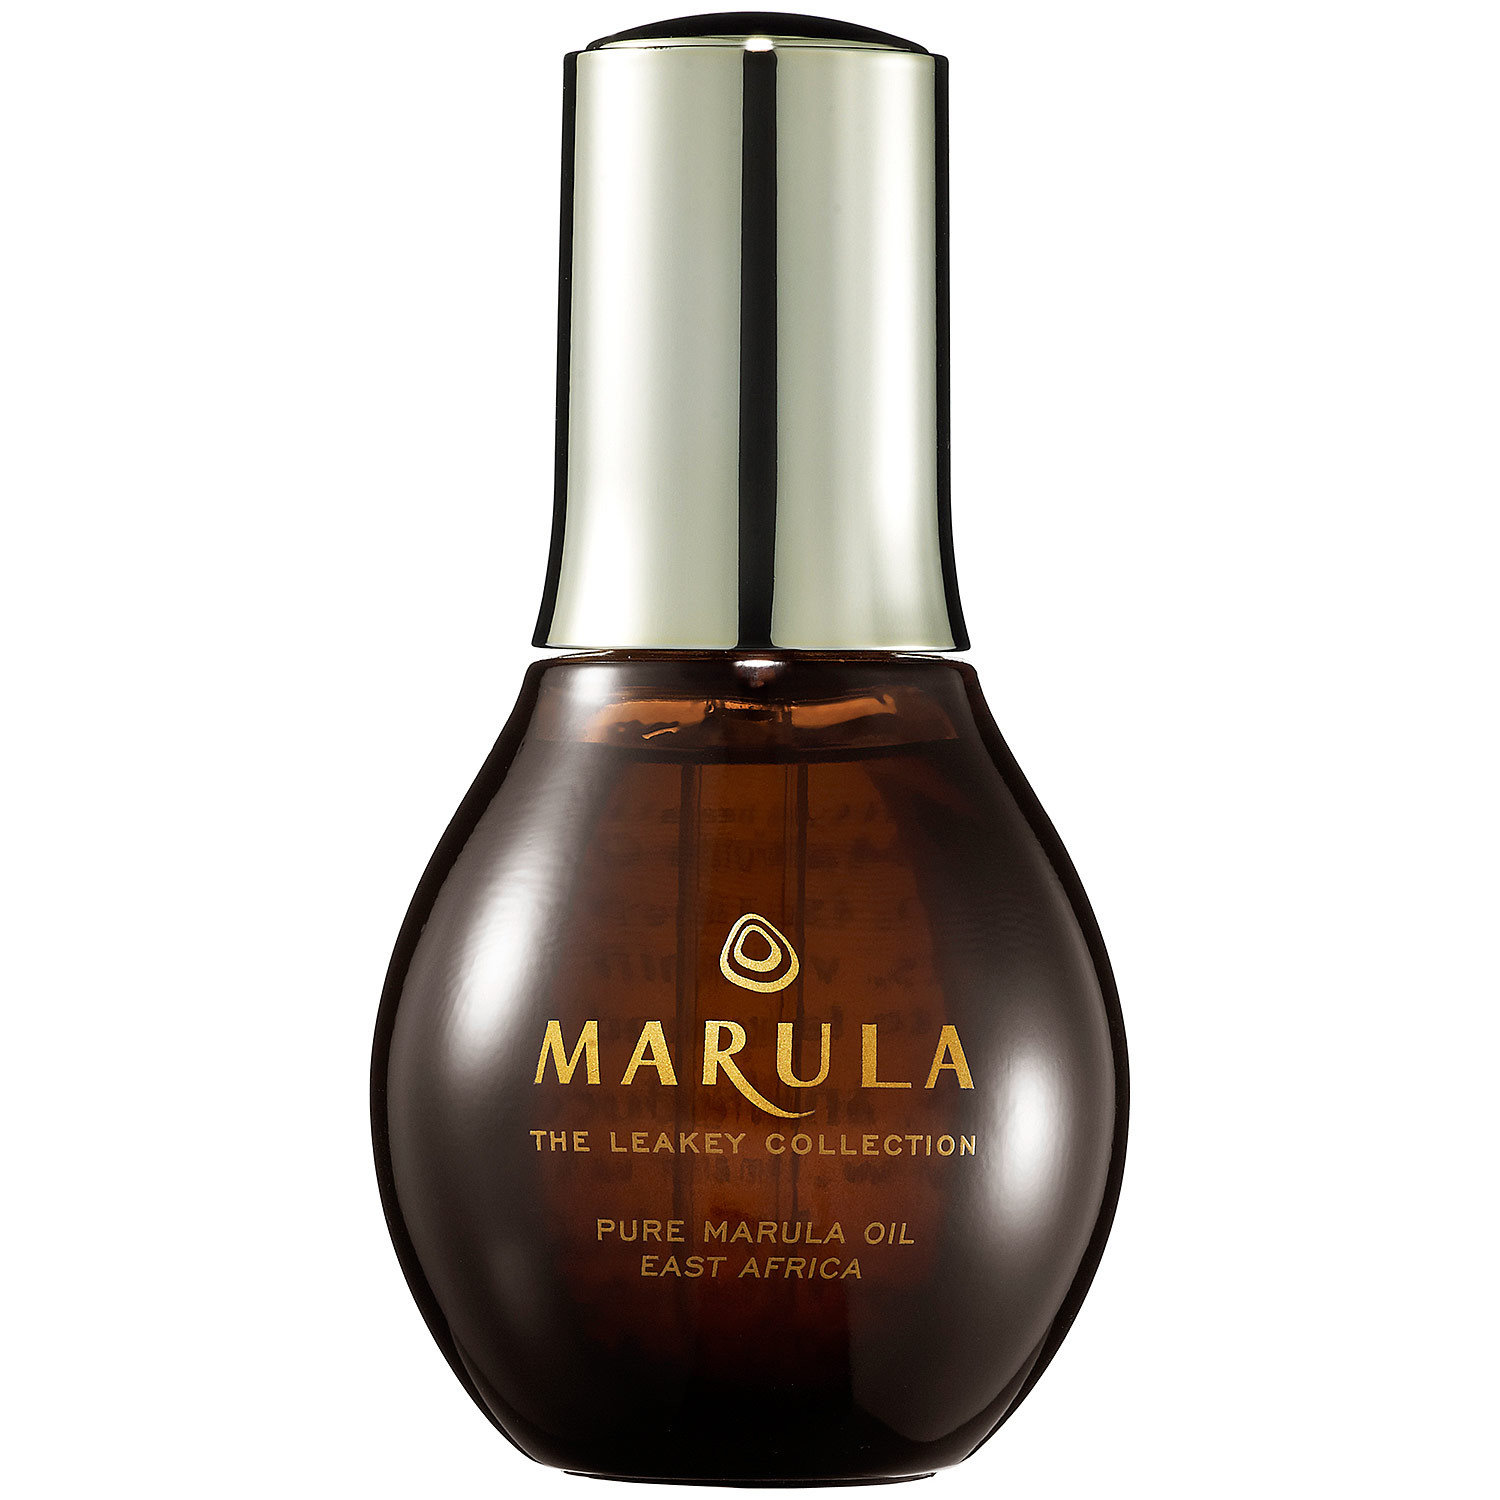 Marula Pure Beauty Oil Facial Oil, 1.69 oz. Soft Silicone Face Exfoliating Blackheads Dirt Wash Pad Facial Makeup Cleansing Brush Tool for Beauty